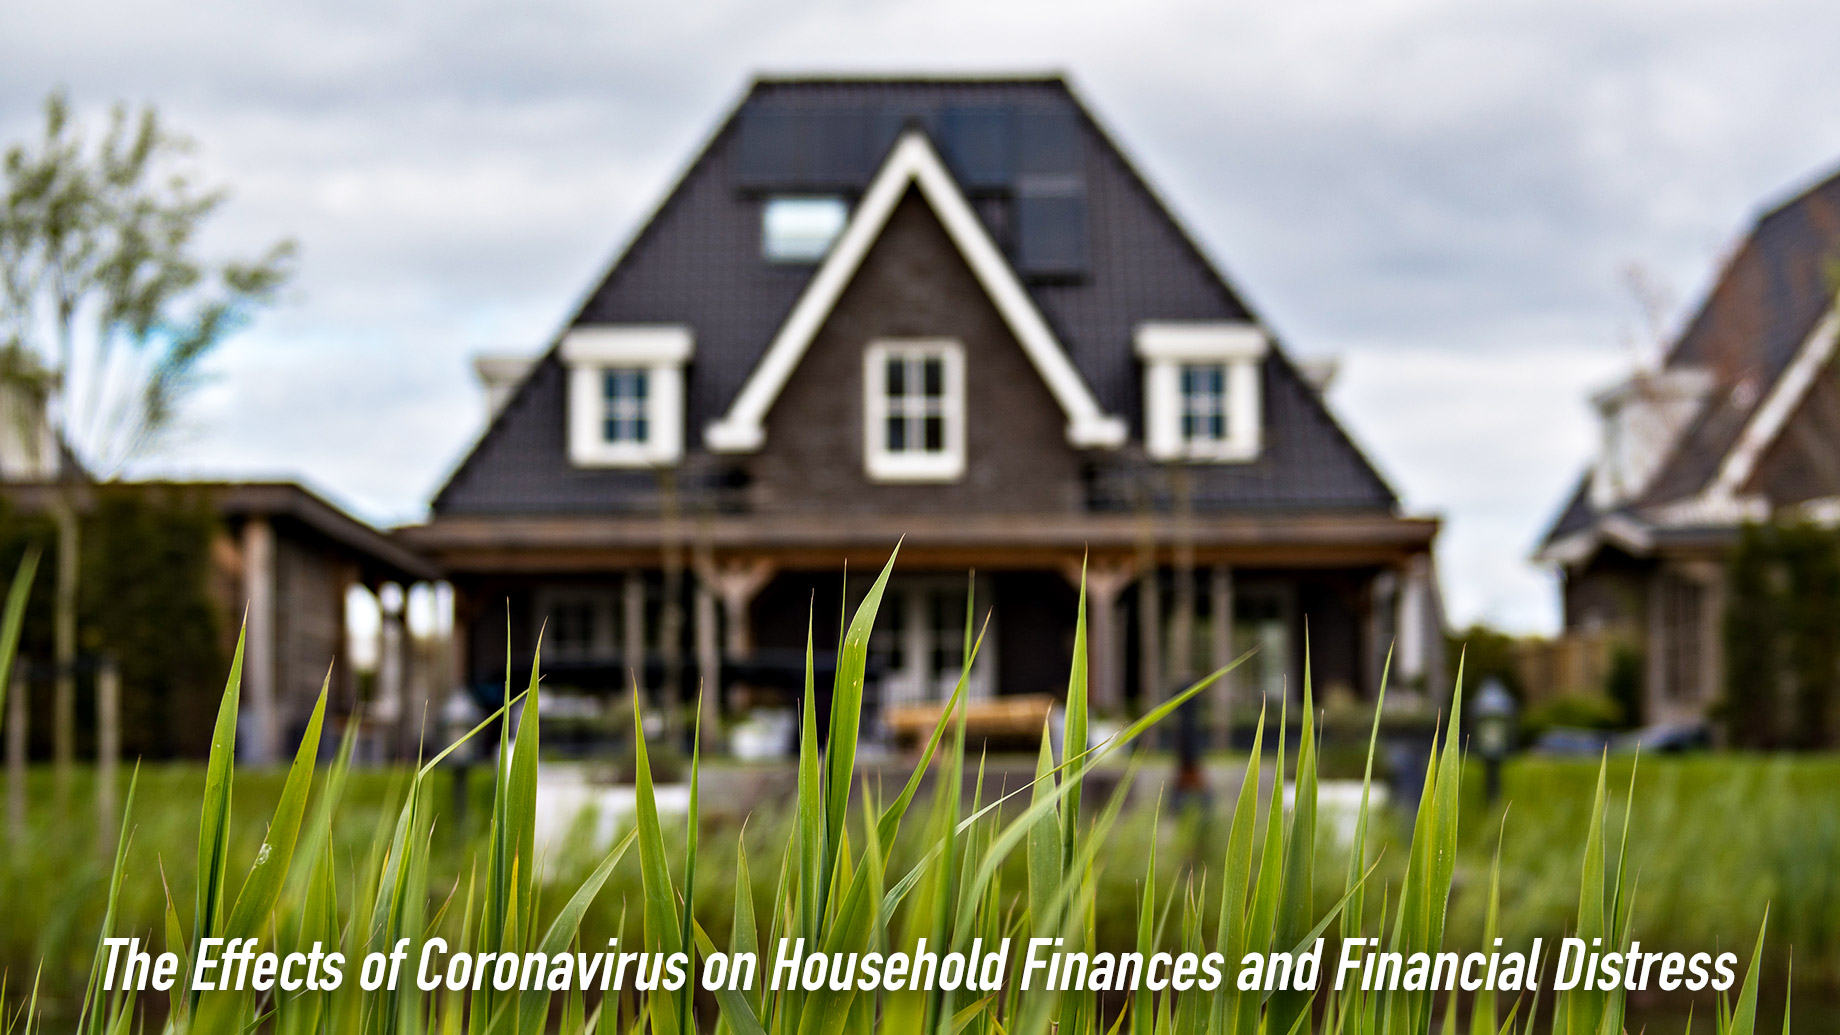 The Effects of Coronavirus on Household Finances and Financial Distress